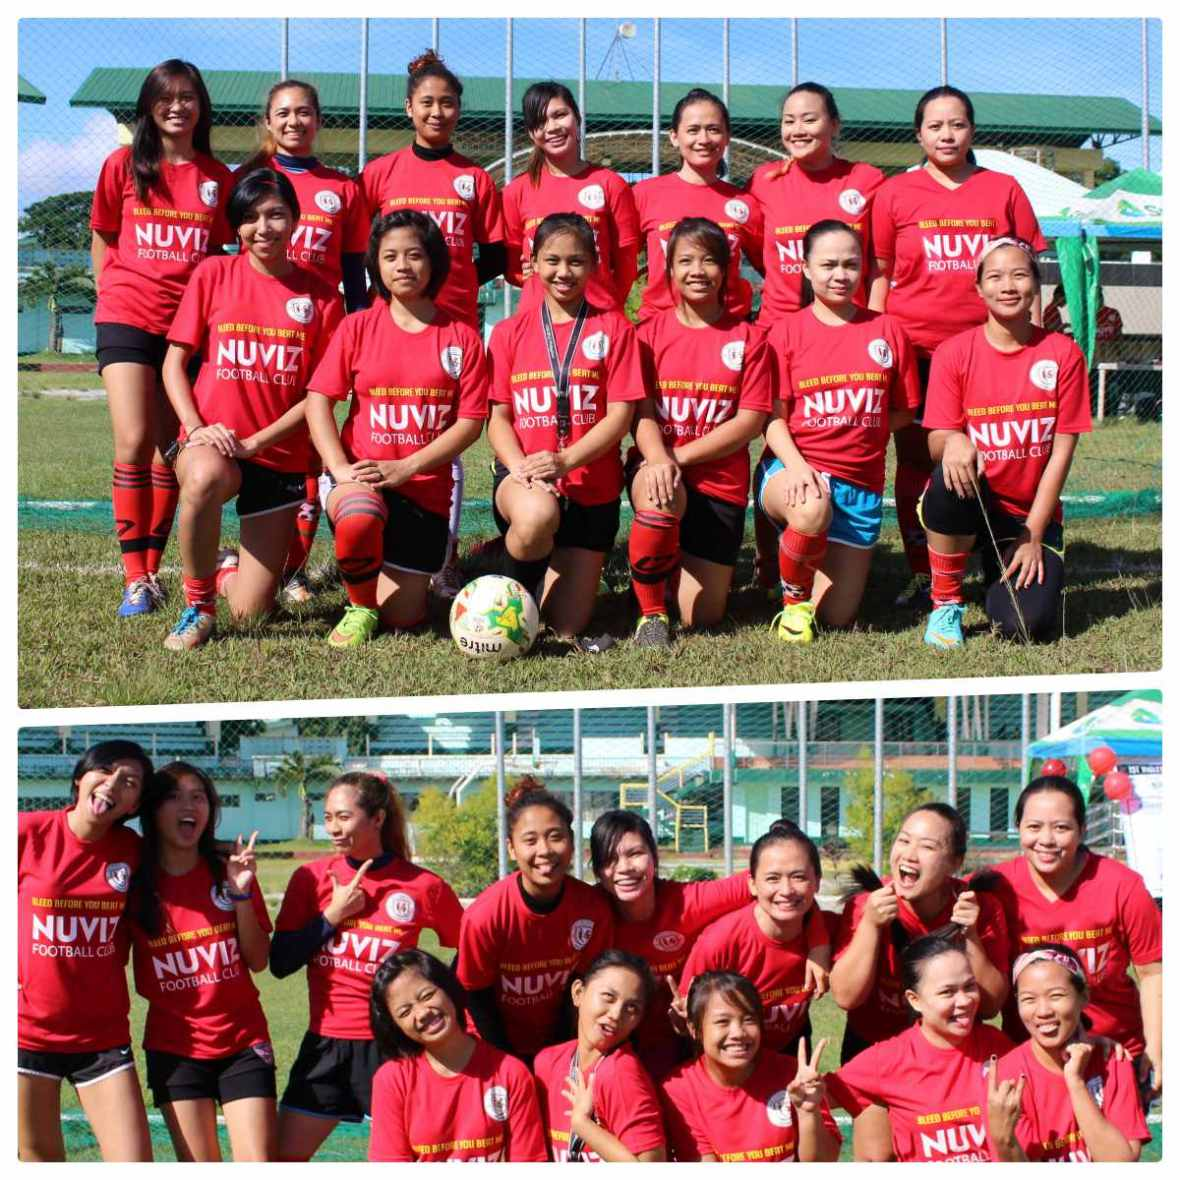 nuviz football club ladies team